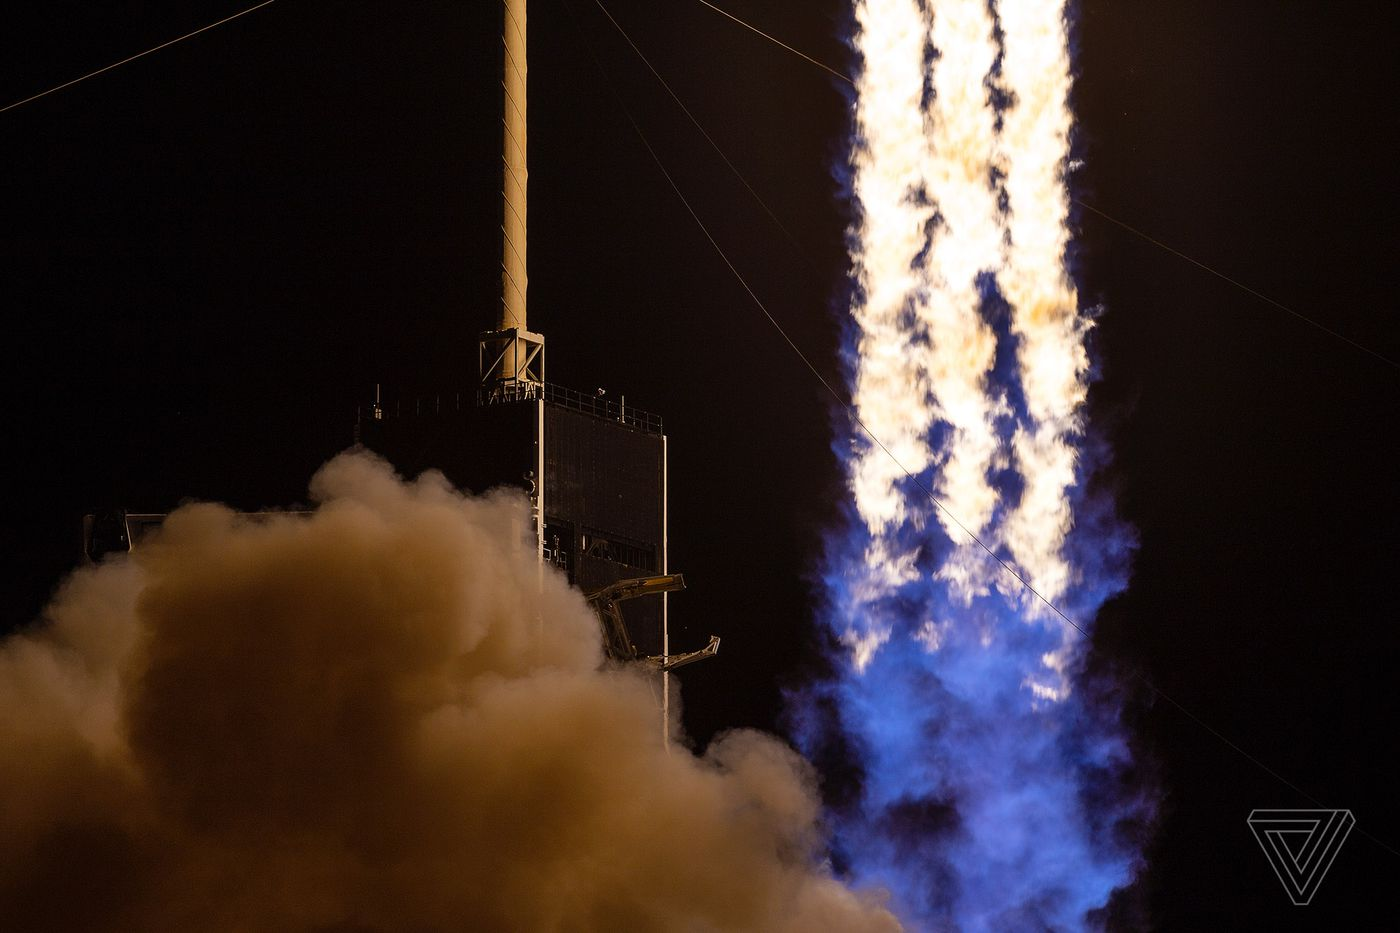 The tech, sweat, and anxiety that goes into shooting a rocket launch